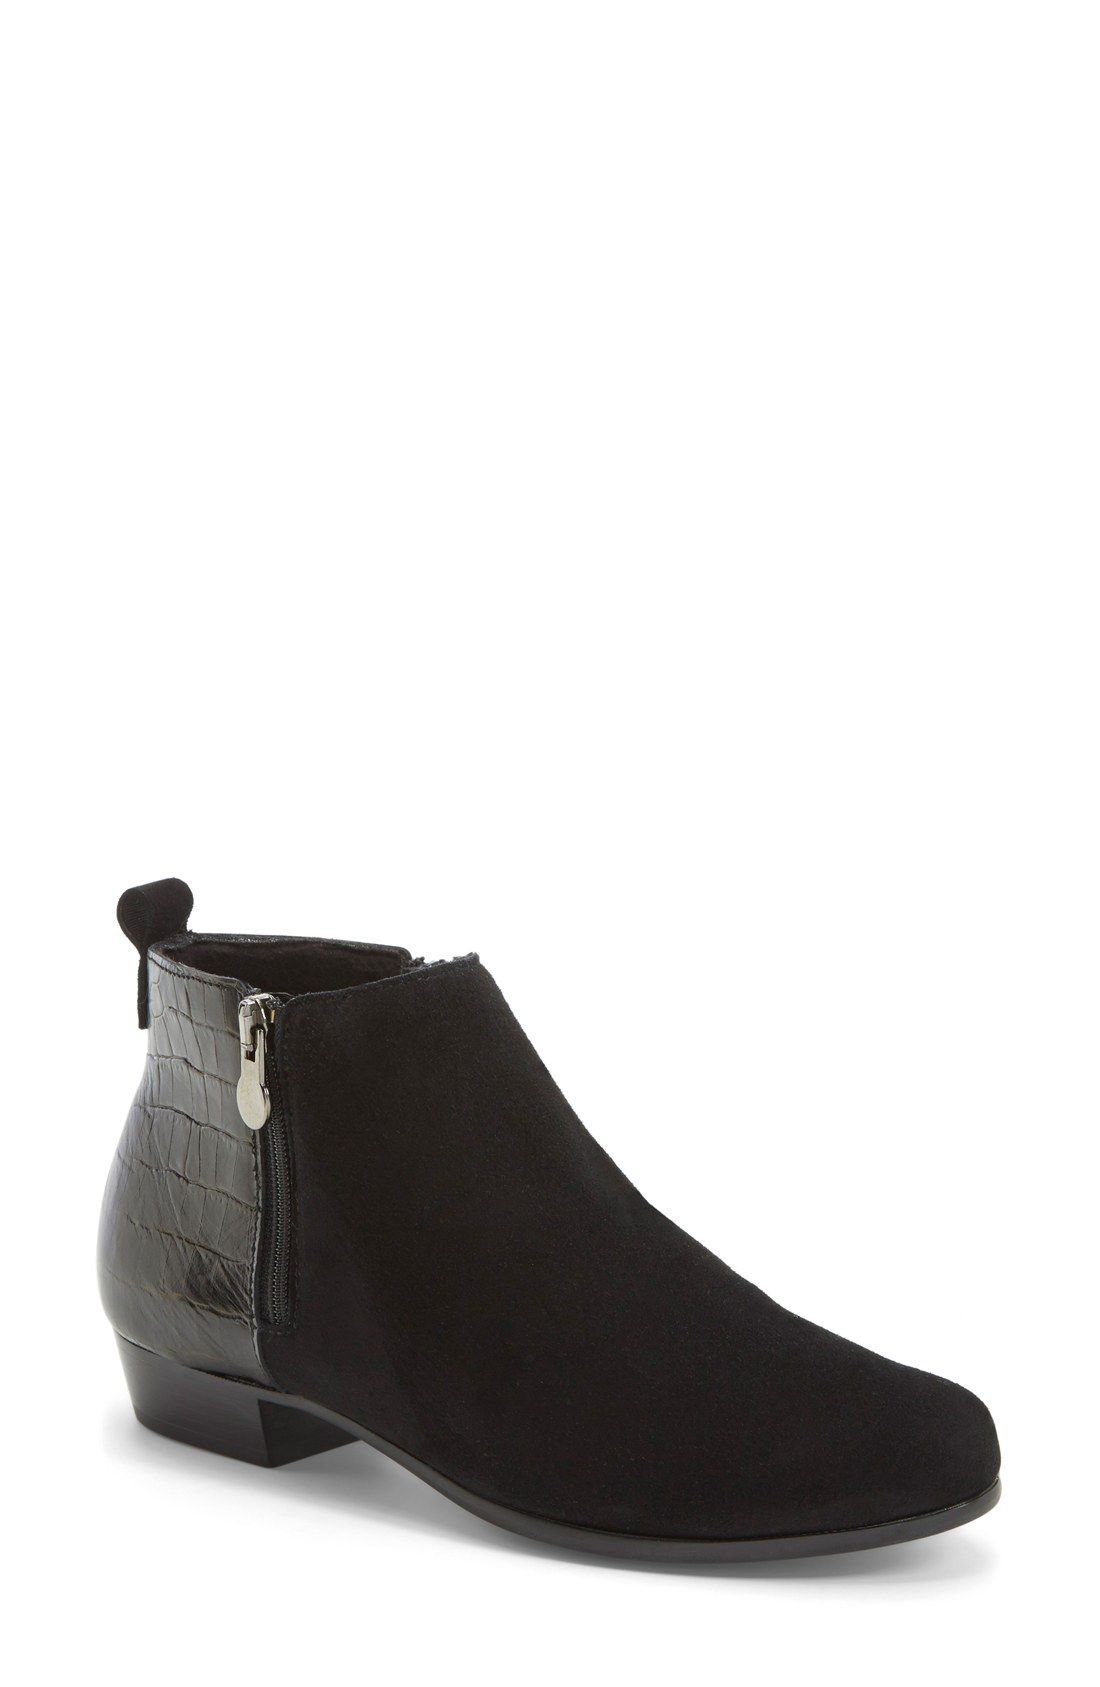 8a106709b Munro 'Lexi' Boot (Women) | Shoes in 2019 | Boots, Shoes, Bootie boots